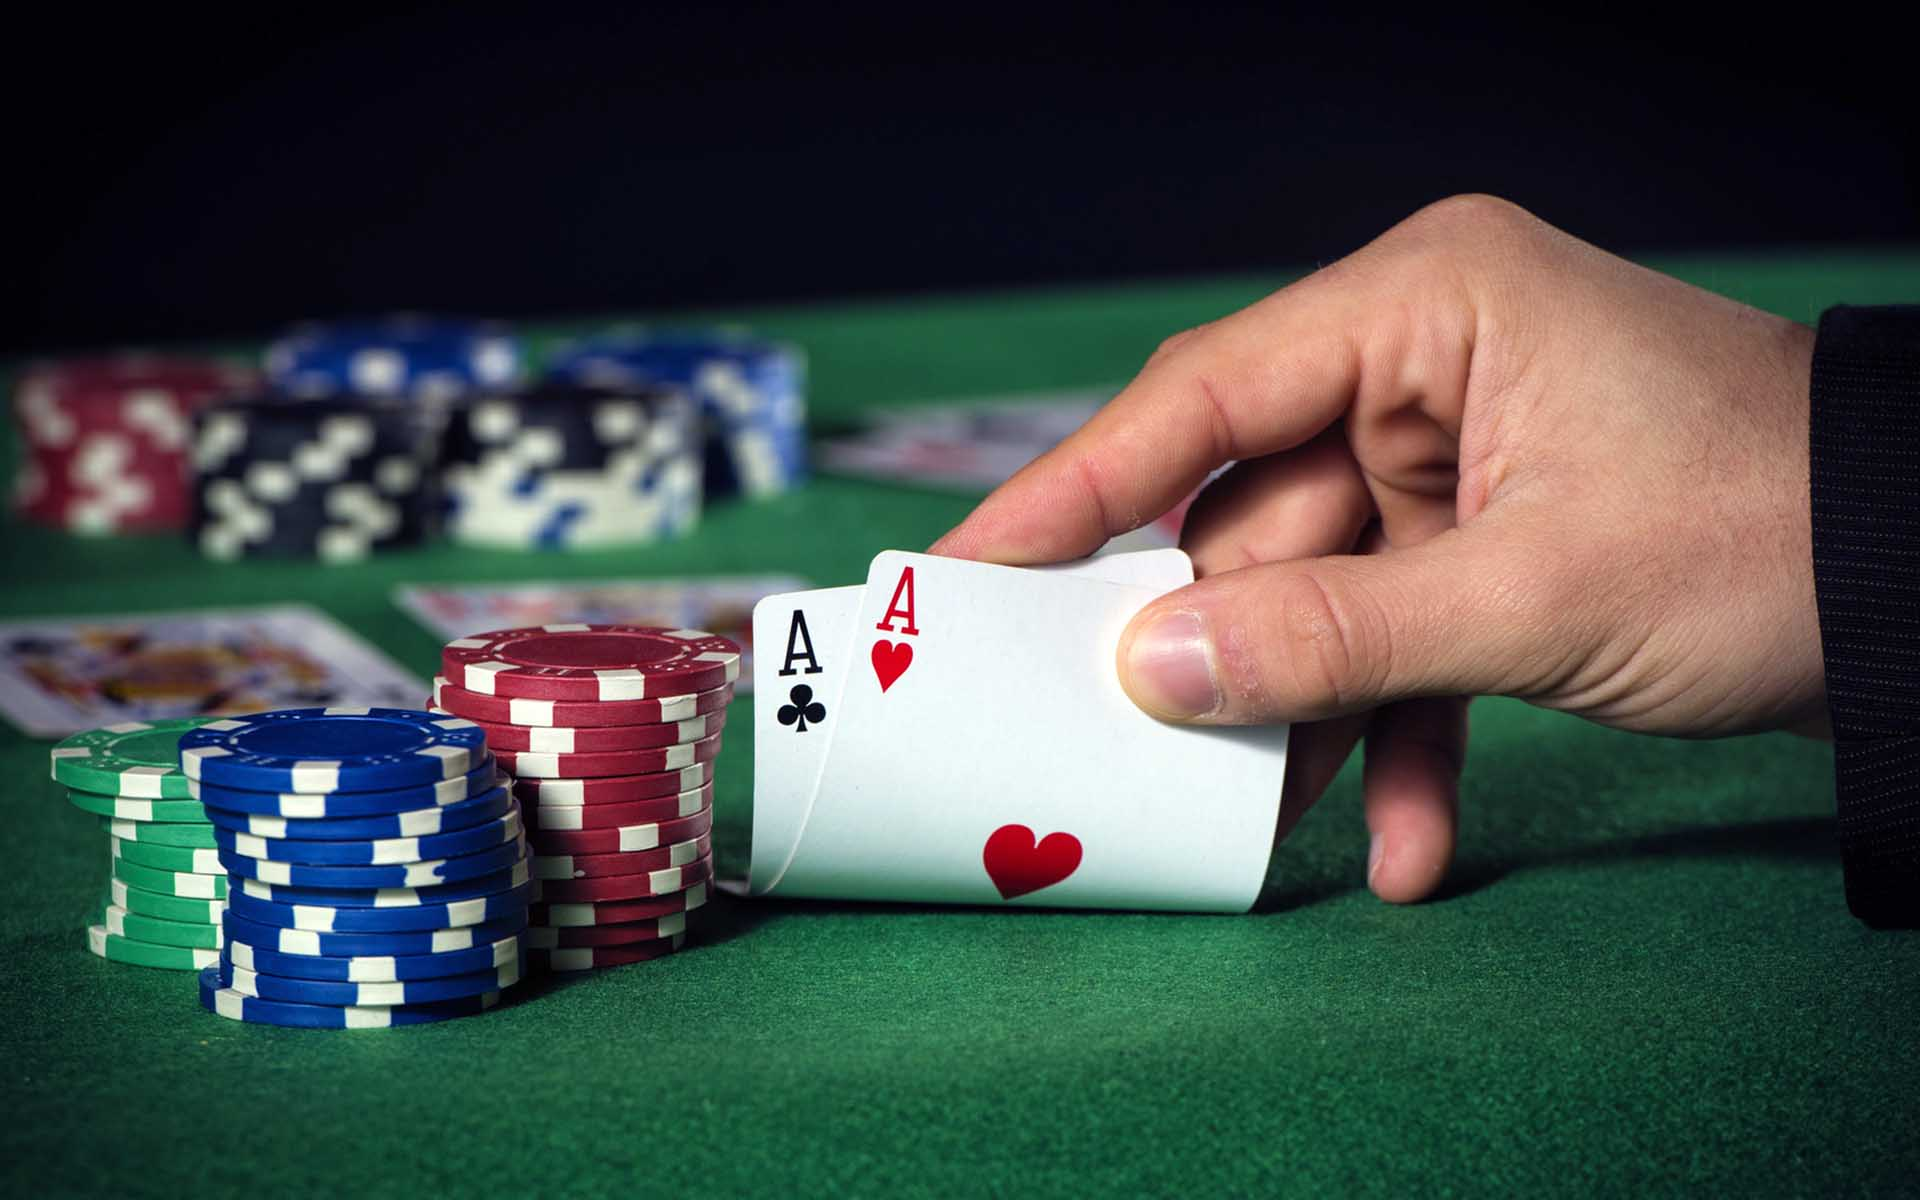 Jazzle Games Hopes to Deal a Winning Hand to Investors